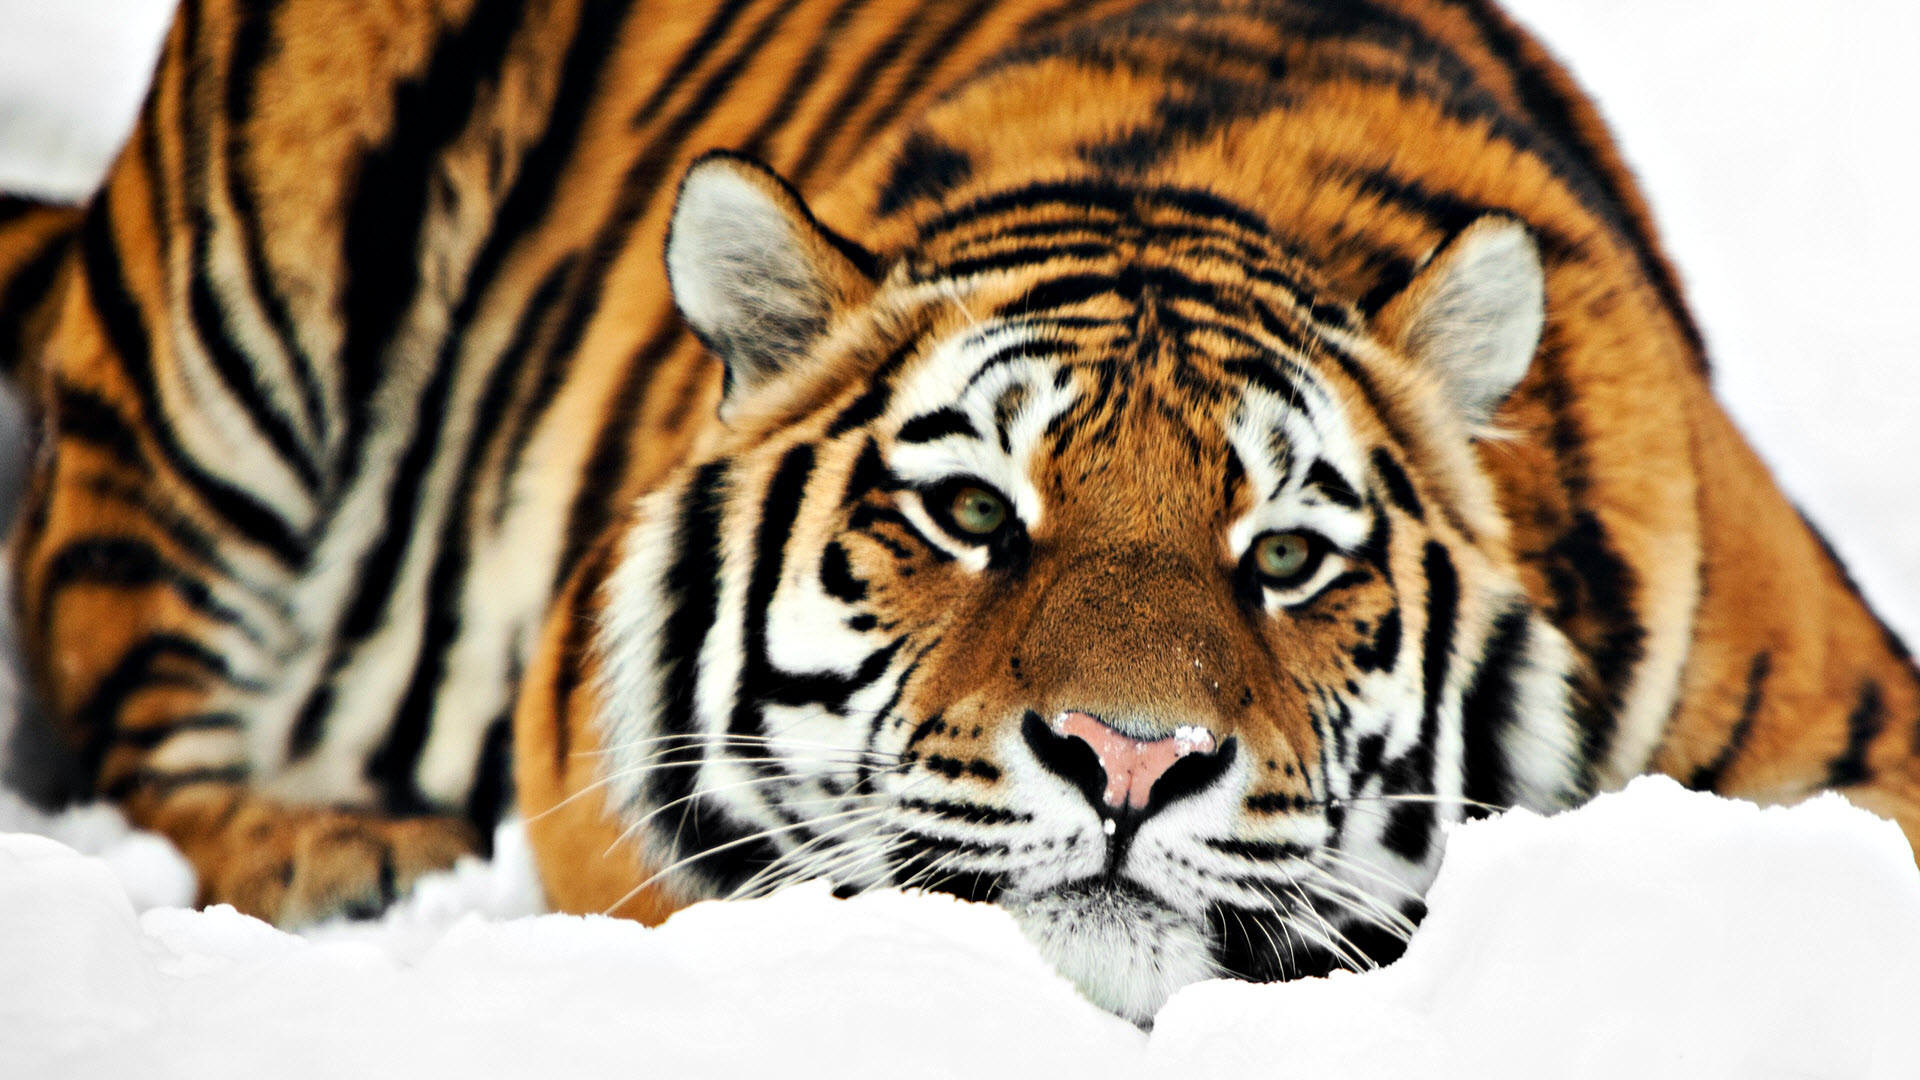 hd tiger wallpaper | 1920x1080 | #13352